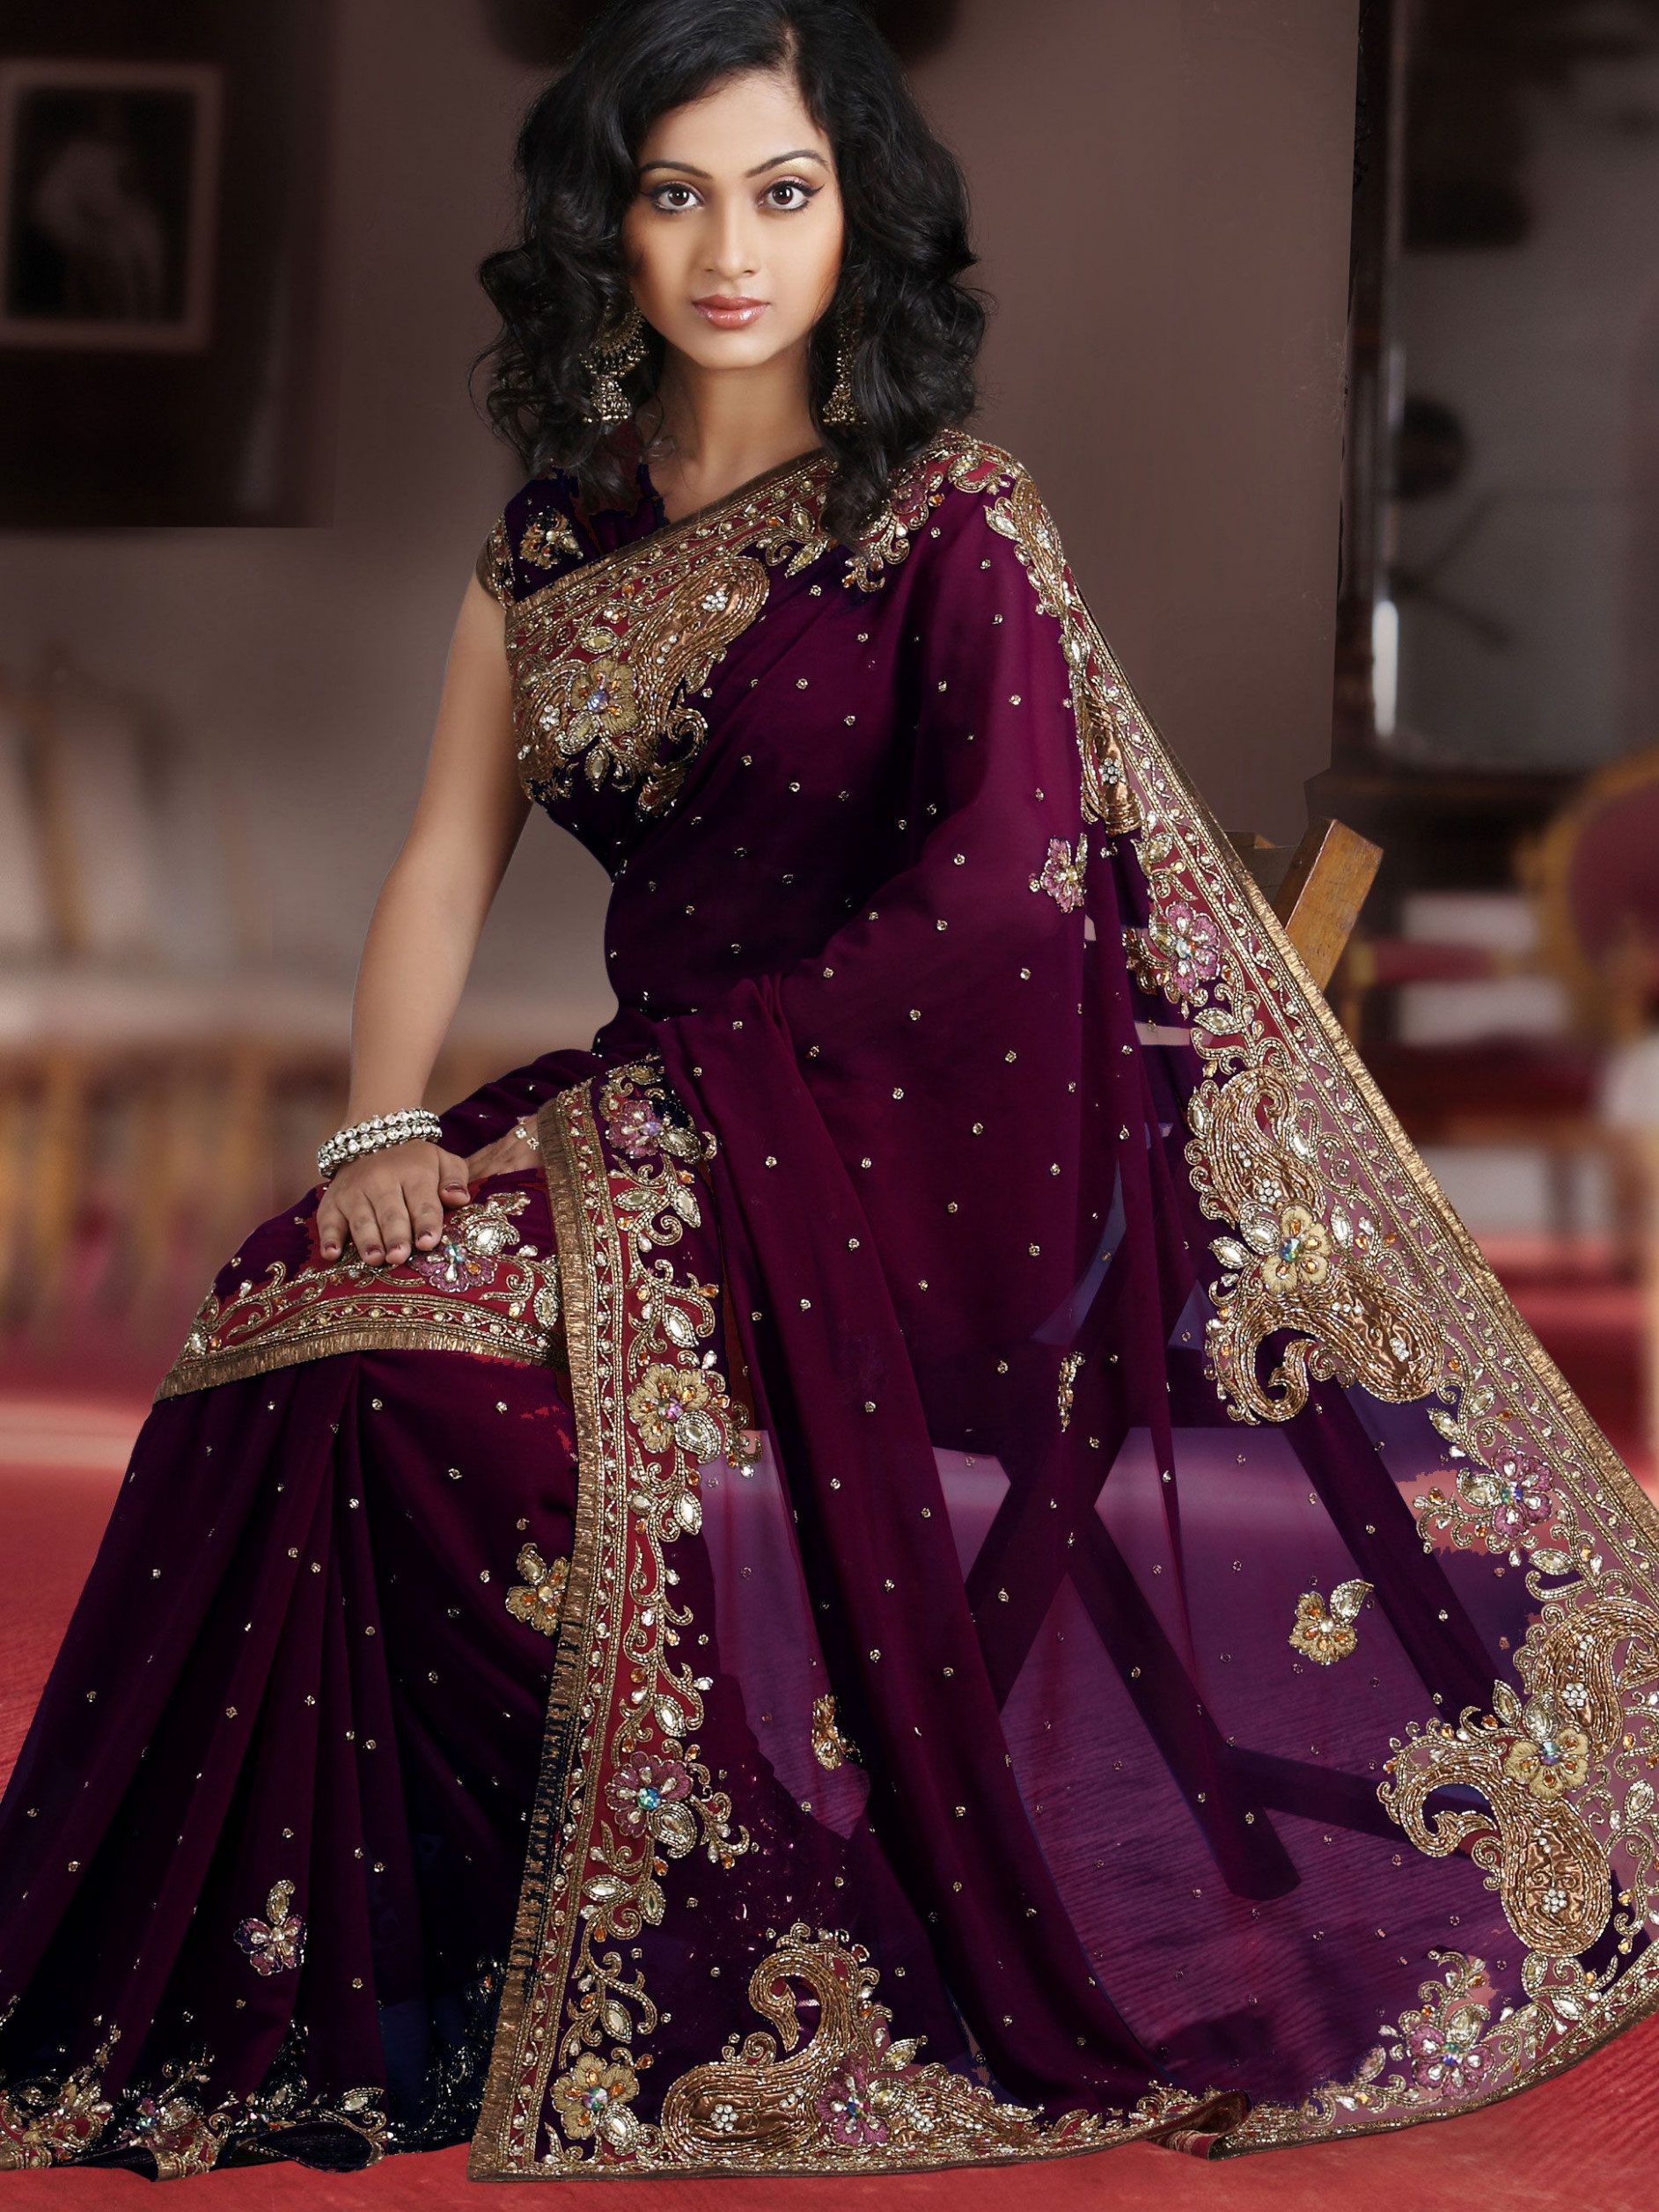 Wine Faux Georgette Saree with Blouse Online Shopping